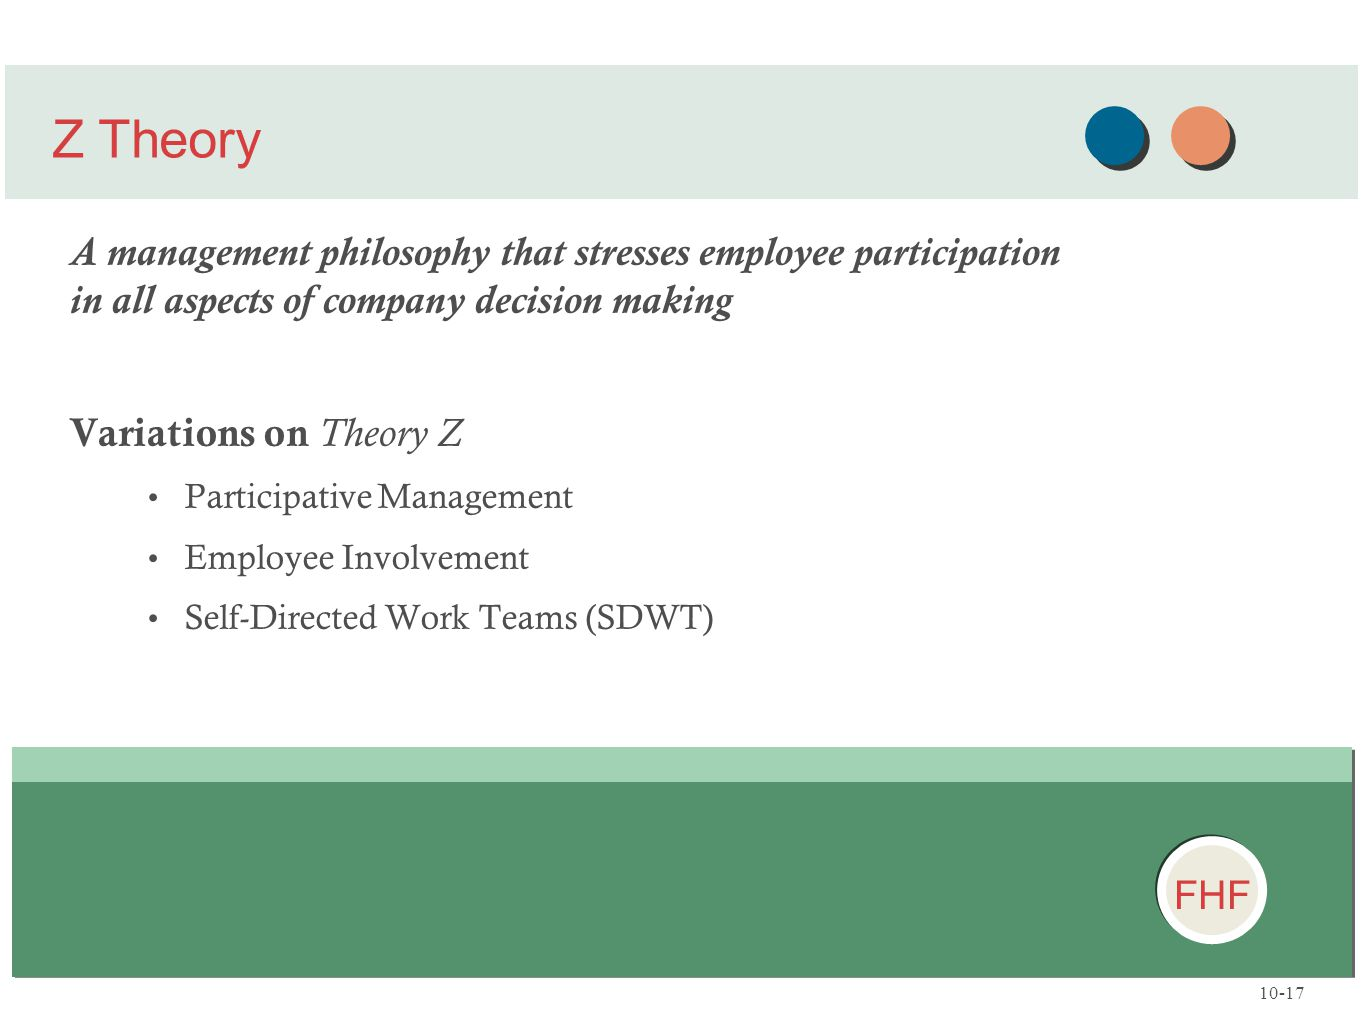 FHF A management philosophy that stresses employee participation in all aspects of company decision making Variations on Theory Z Participative Manage